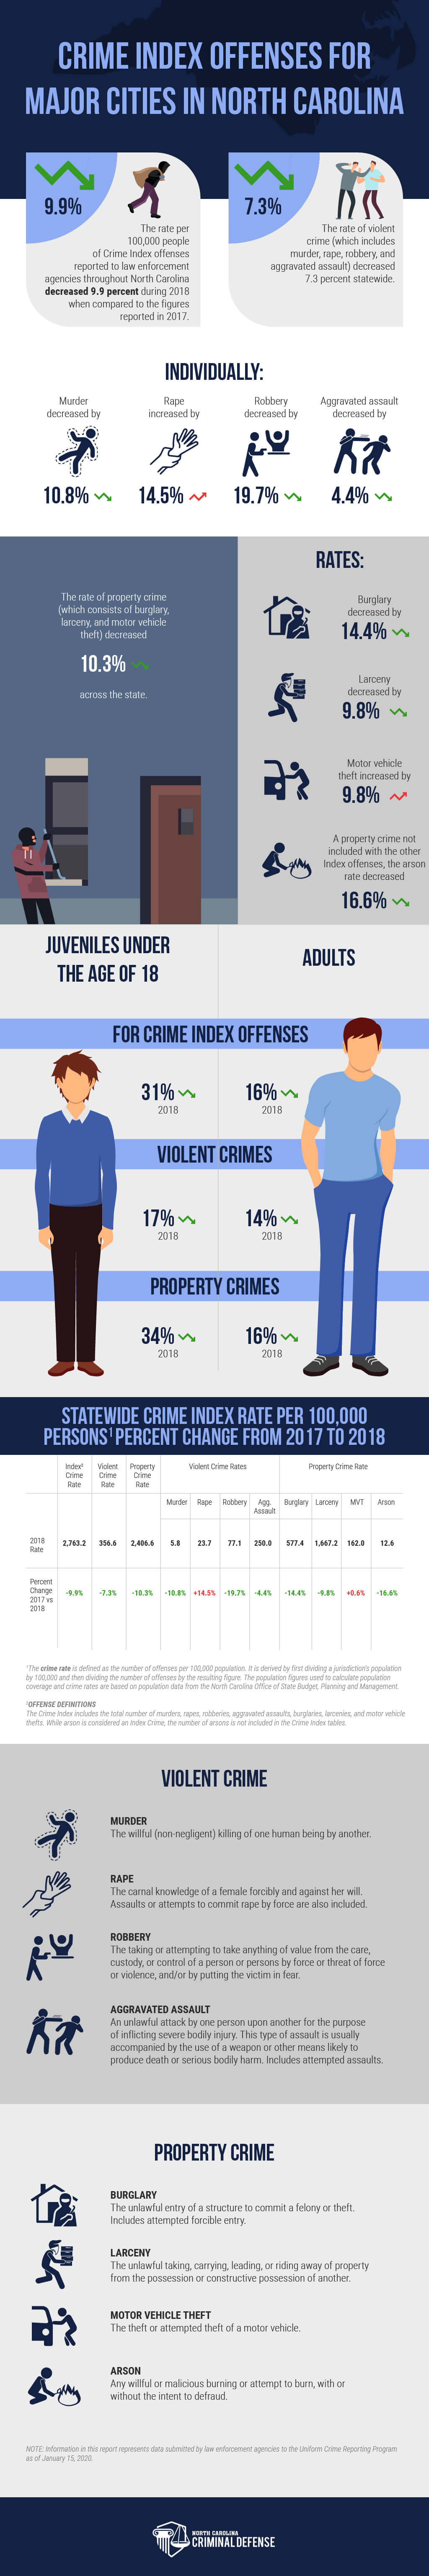 Is Crime on the Rise? Top Crime Statistics of North Carolina's Biggest Cities